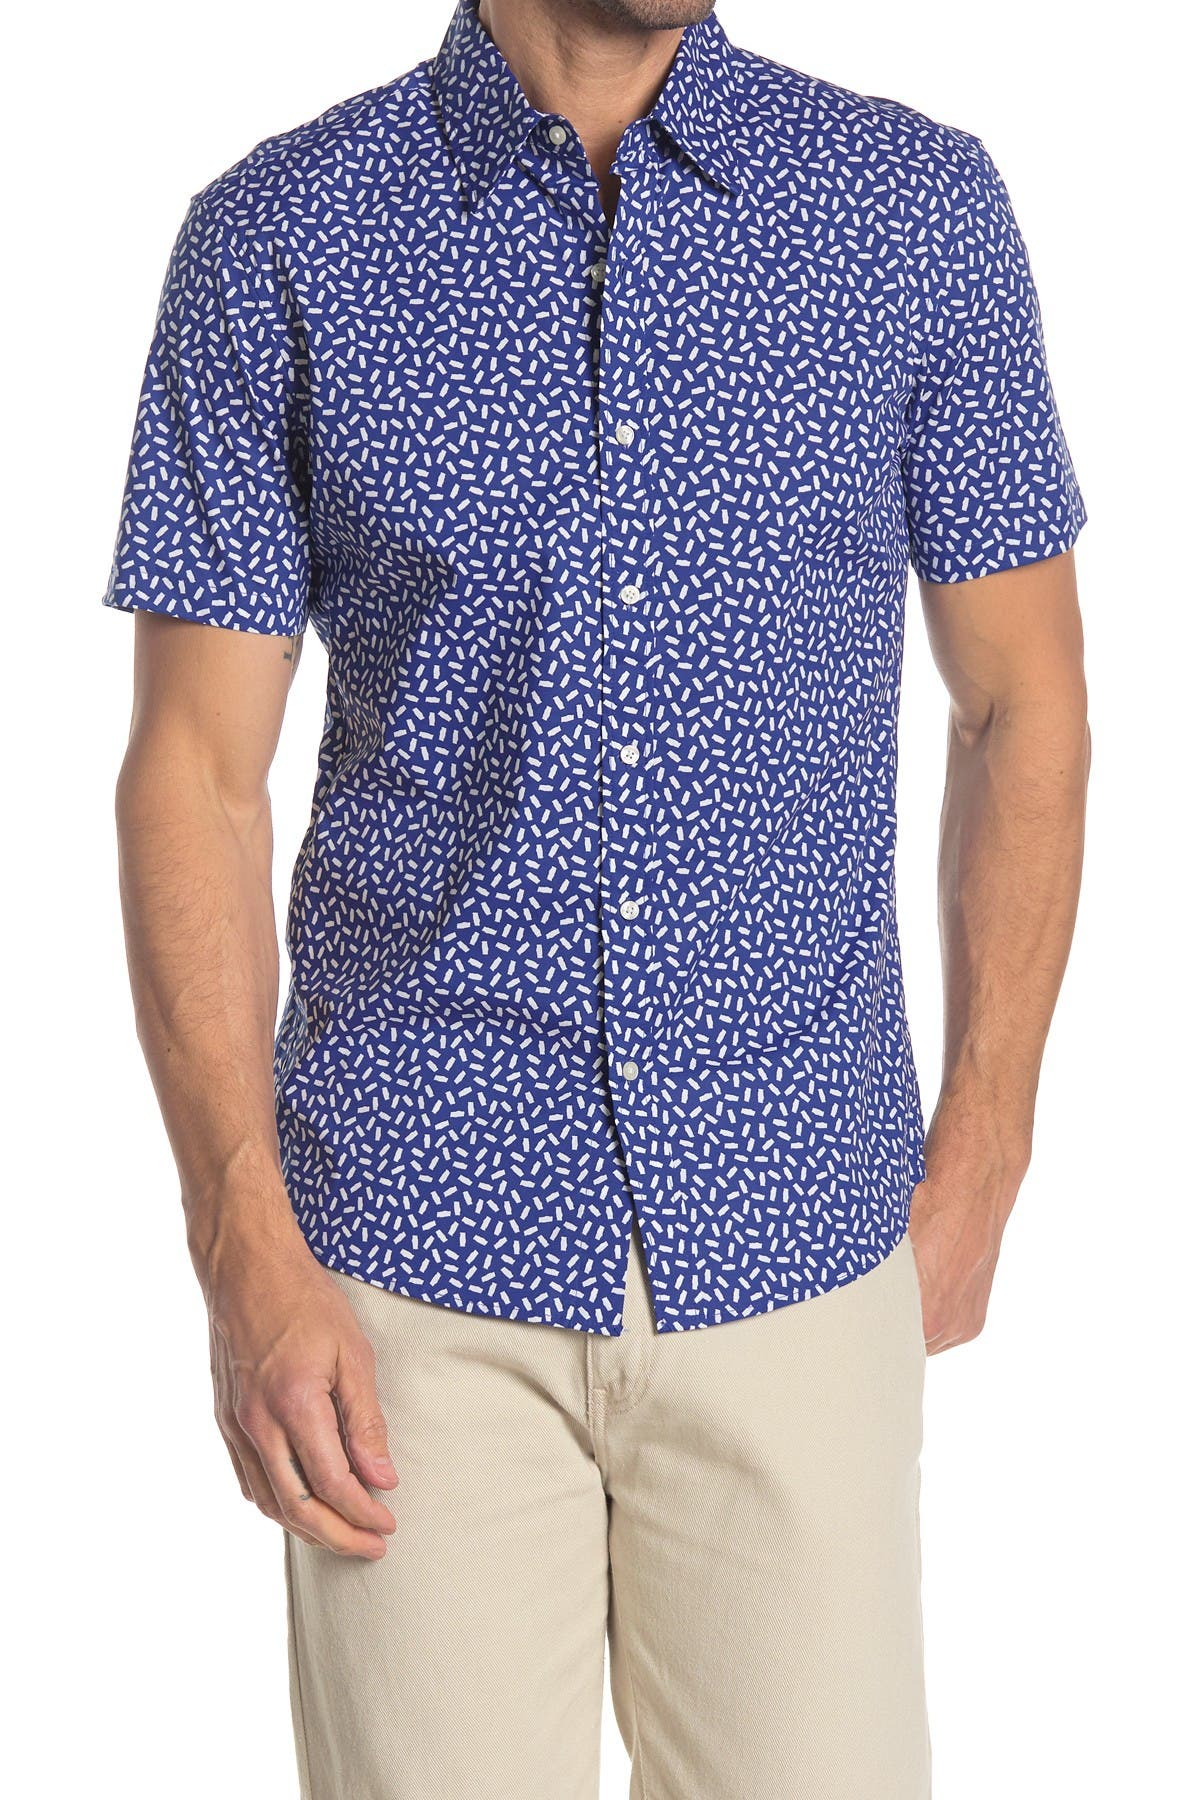 Image of Michael Kors Short Sleeve Tic Tac Print Shirt